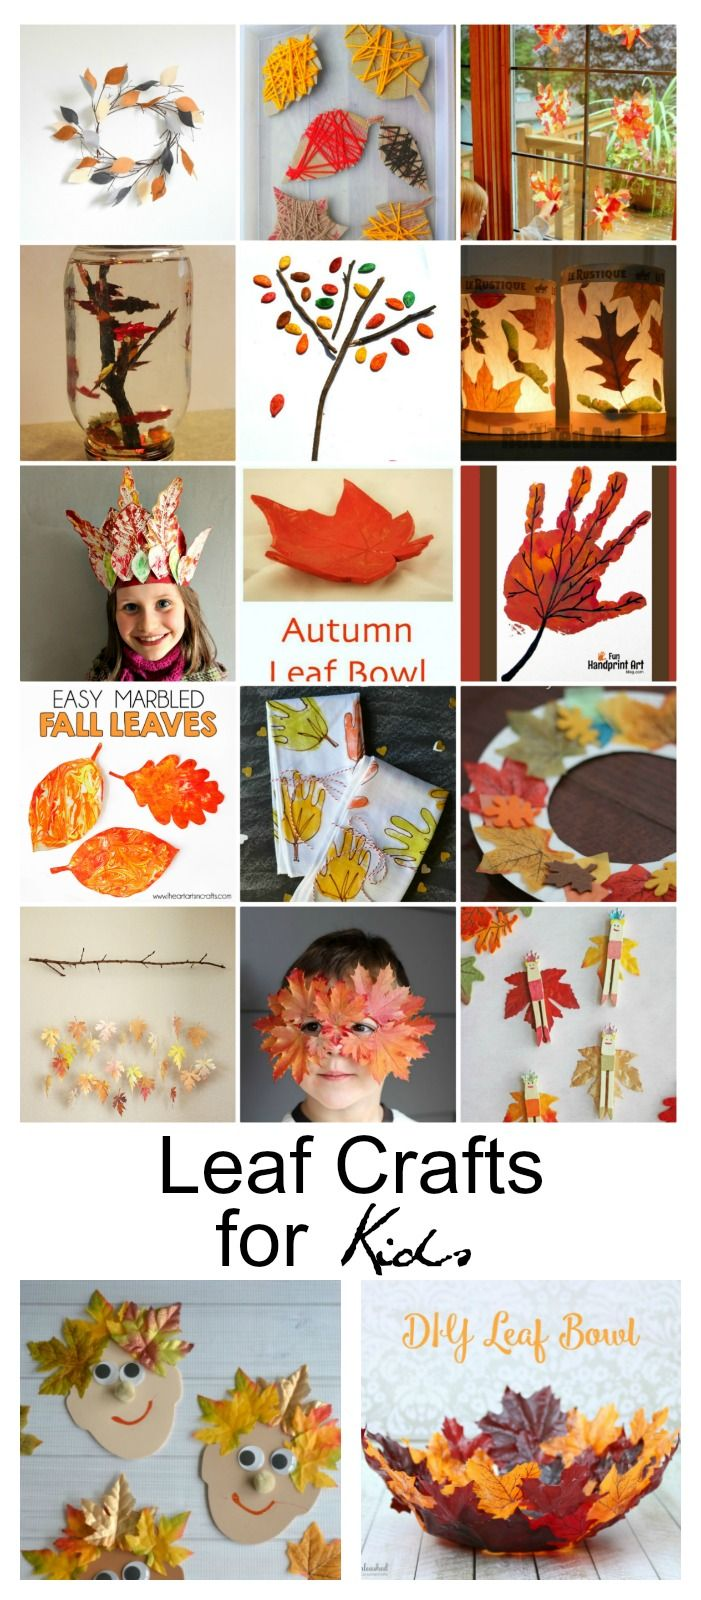 As the air turns crisp and the season begins to change, it puts me in the mood to start crafting with my kids with all of these amazing Fall colors. I've put together a roundup of Fall Leaf Crafts for Kids that is sure to get you into the Fall mood as well.